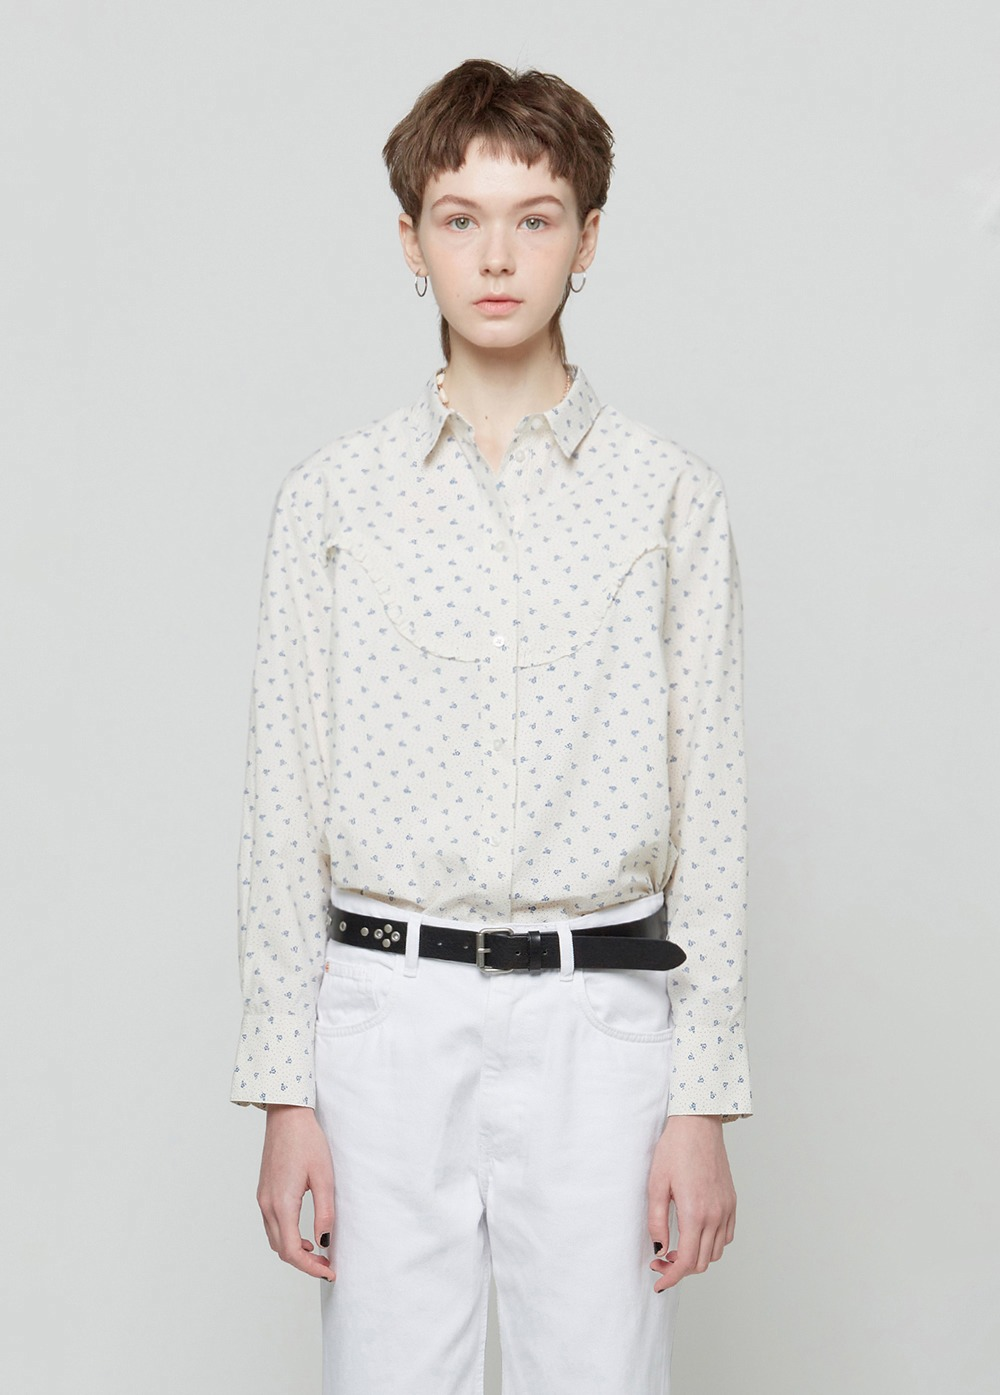 KANCO FLOWER FRILL SHIRT ivory